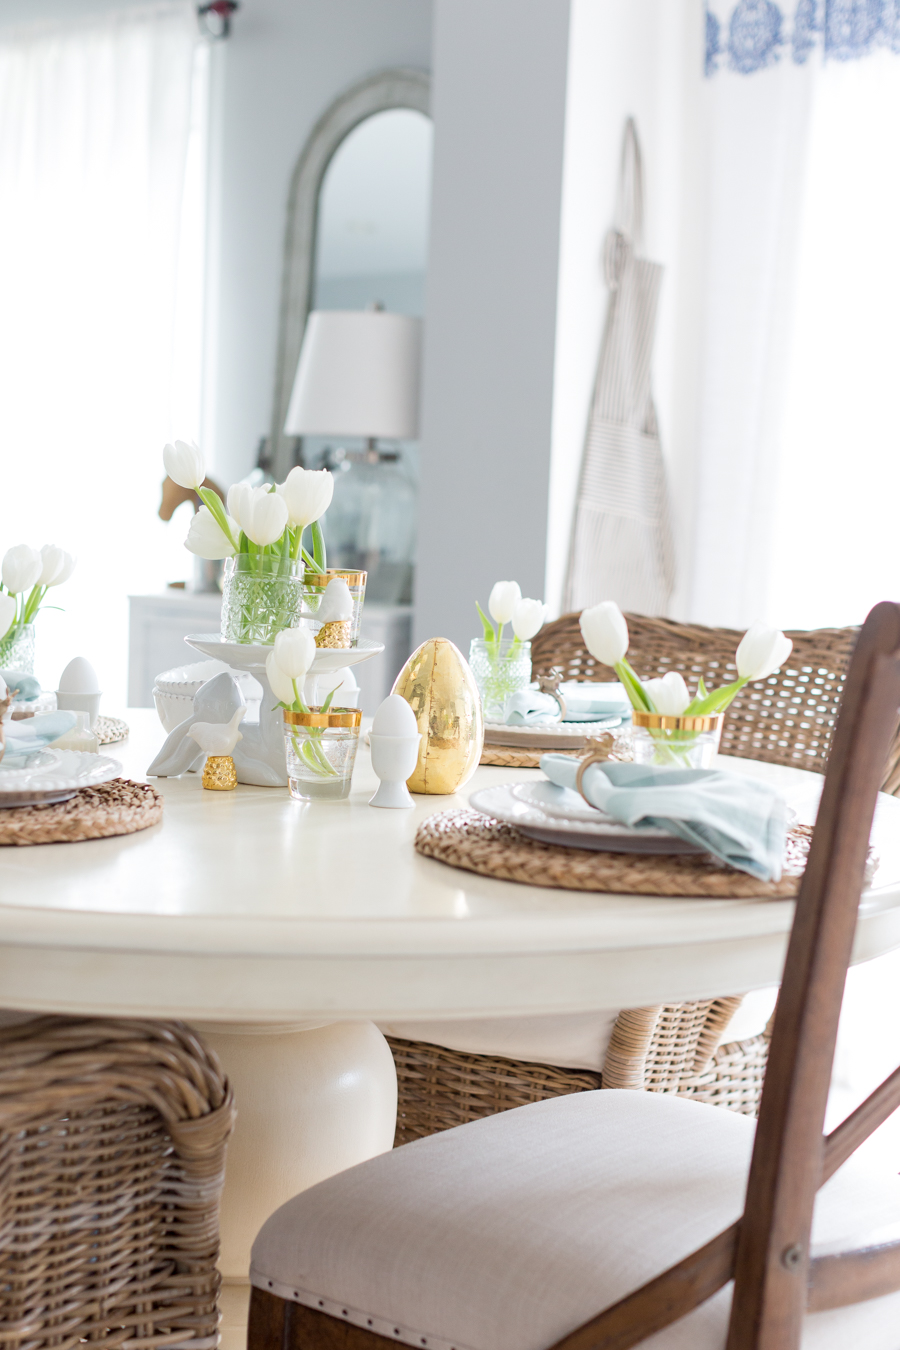 eastertablesetting-7